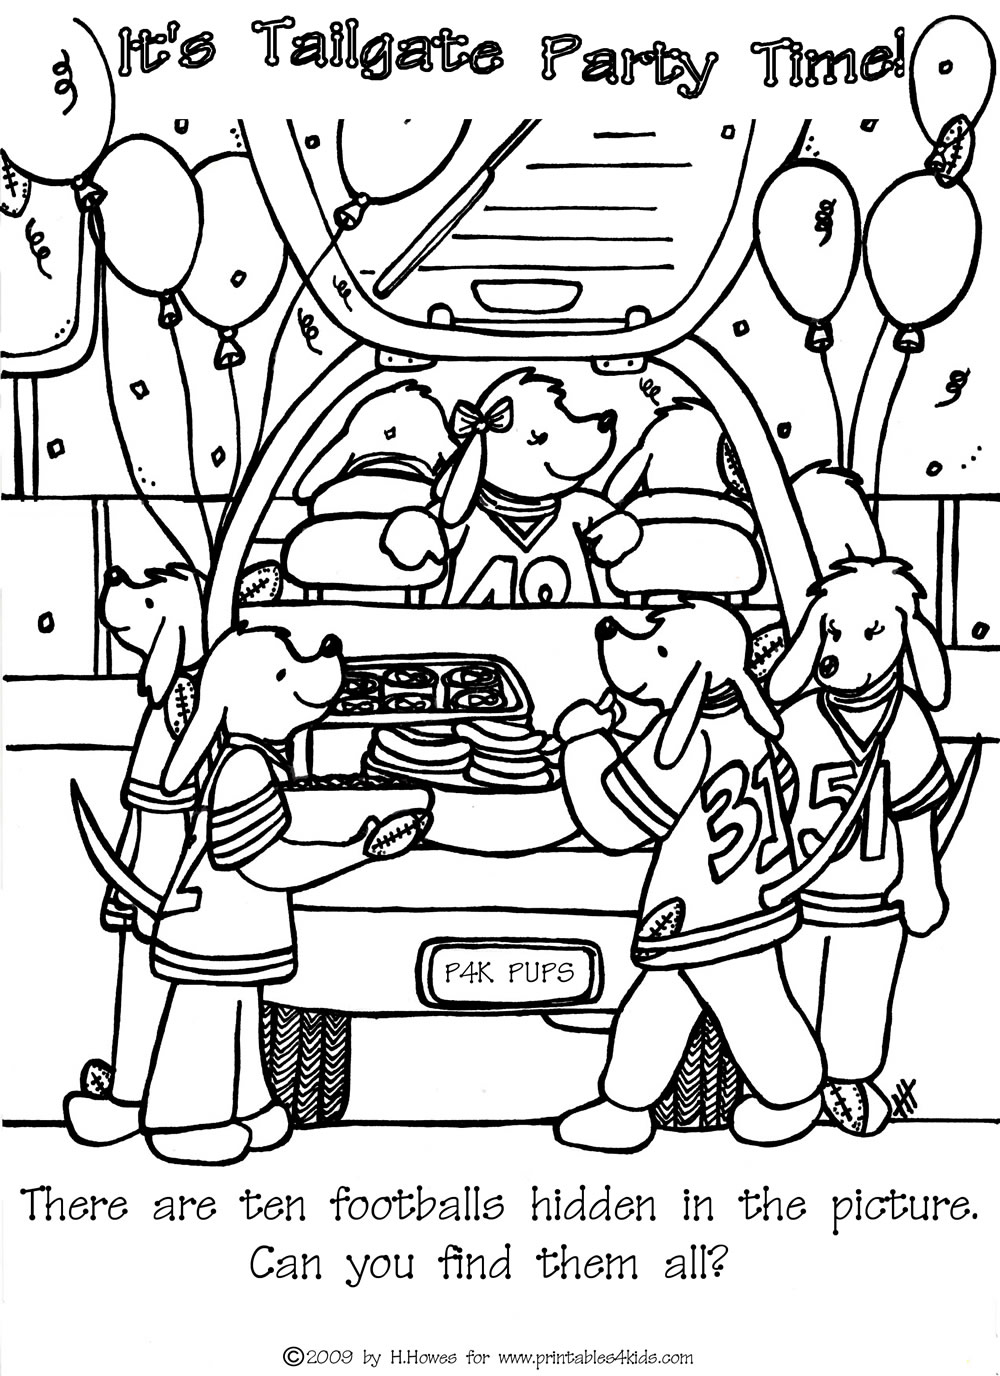 and find coloring pages - photo#25